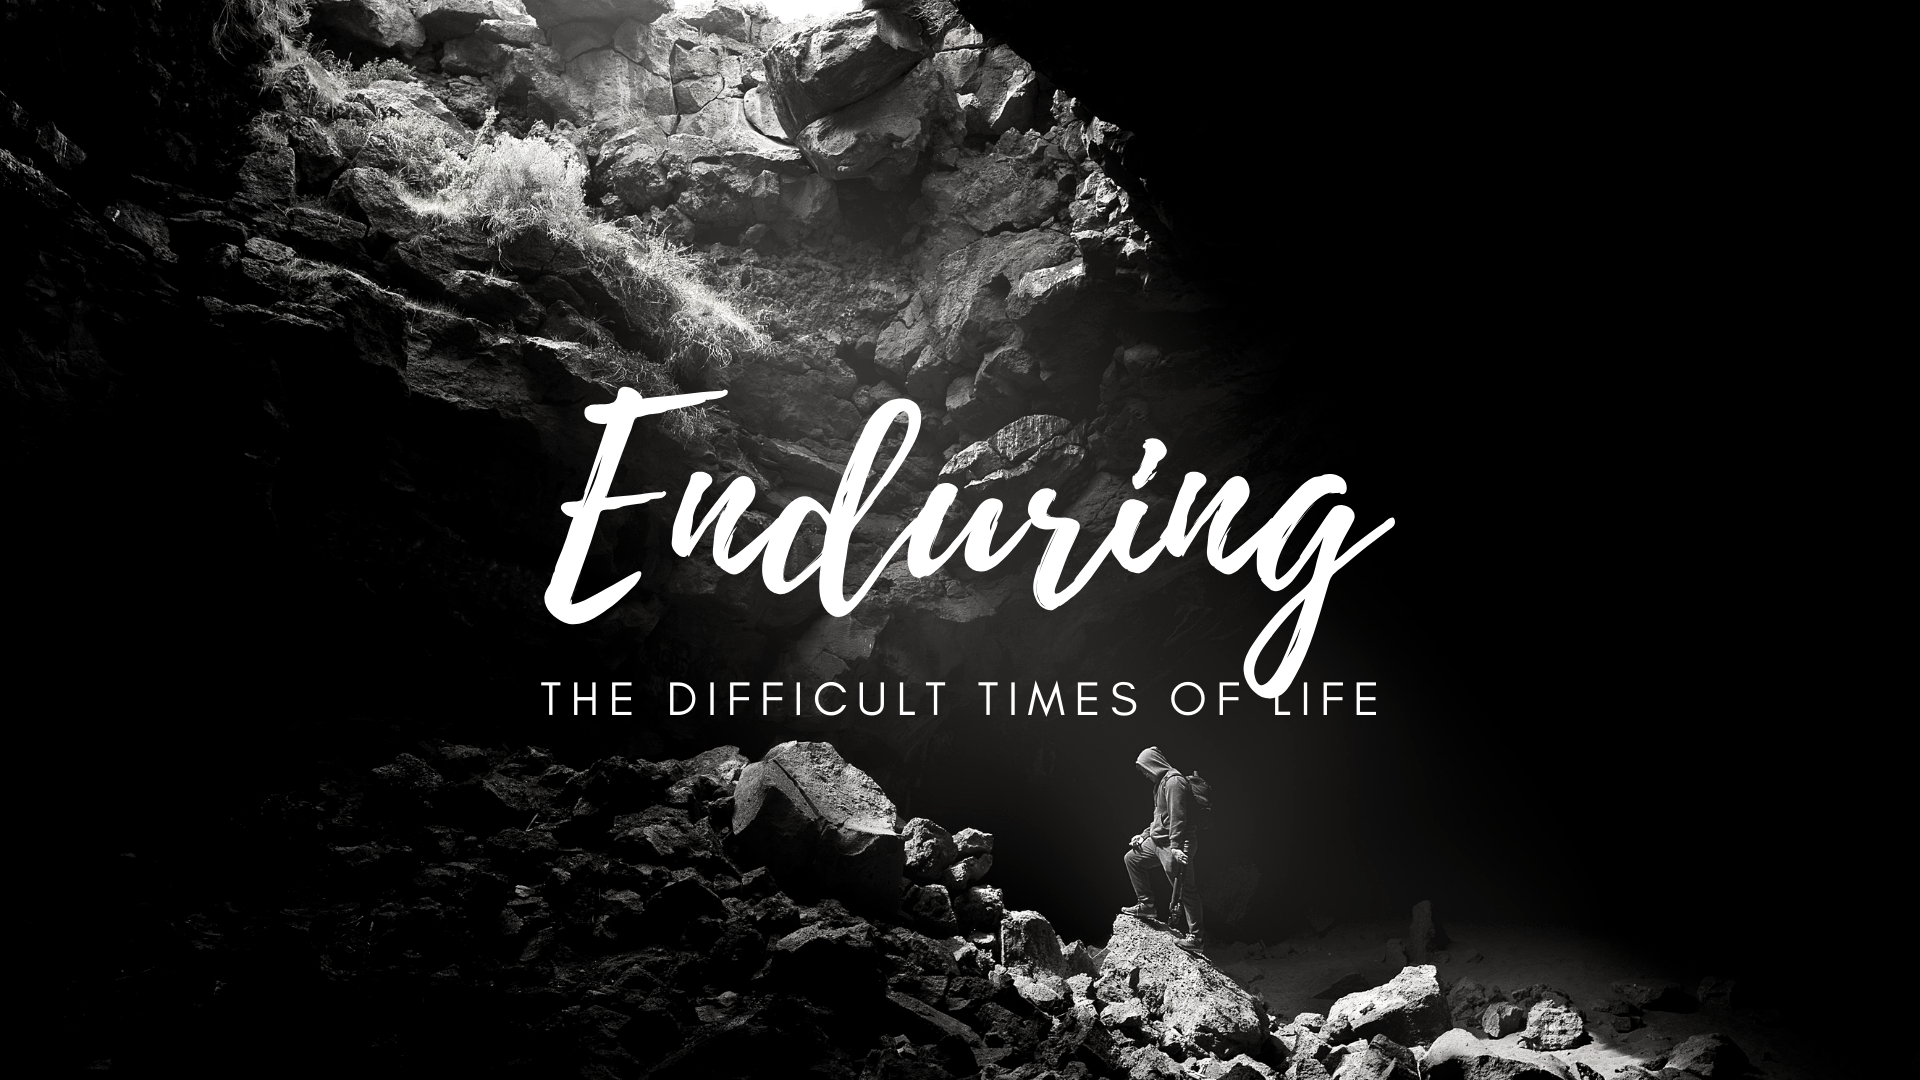 06.23.19 - Enduring the difficult times of life